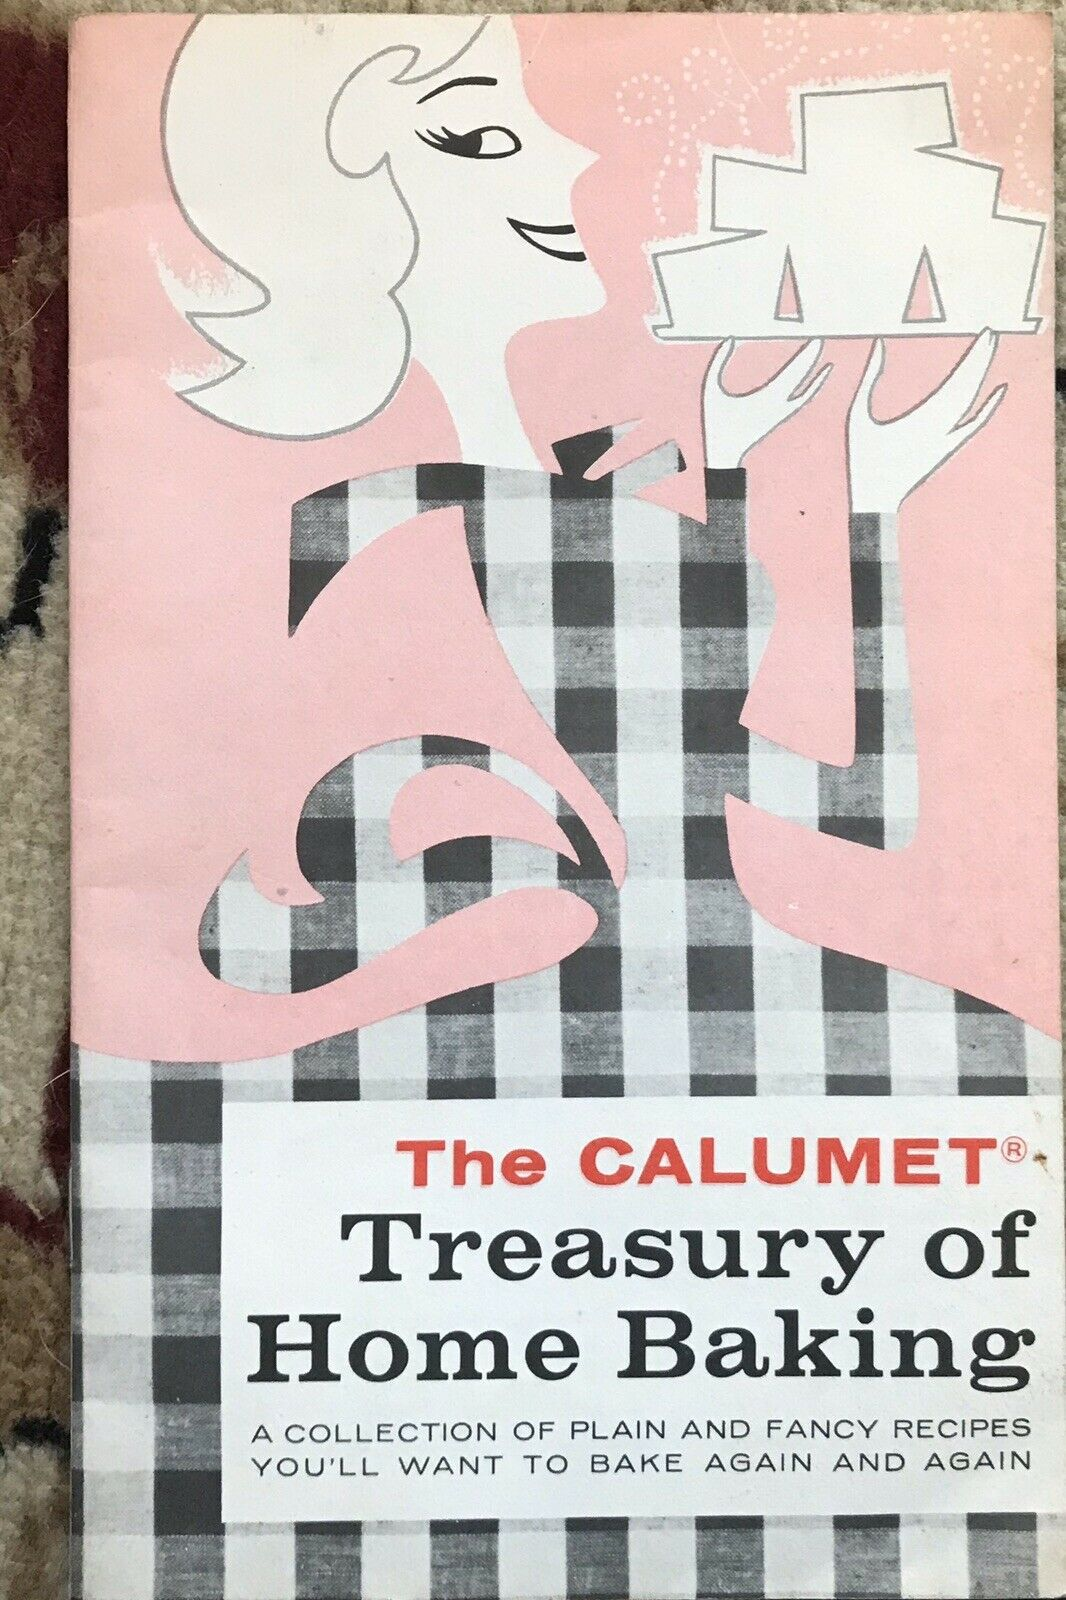 VINTAGE 1977 CALUMET TREASURY OFHOME BAKING COOKBOOK BREAD CAKE DESSERT |